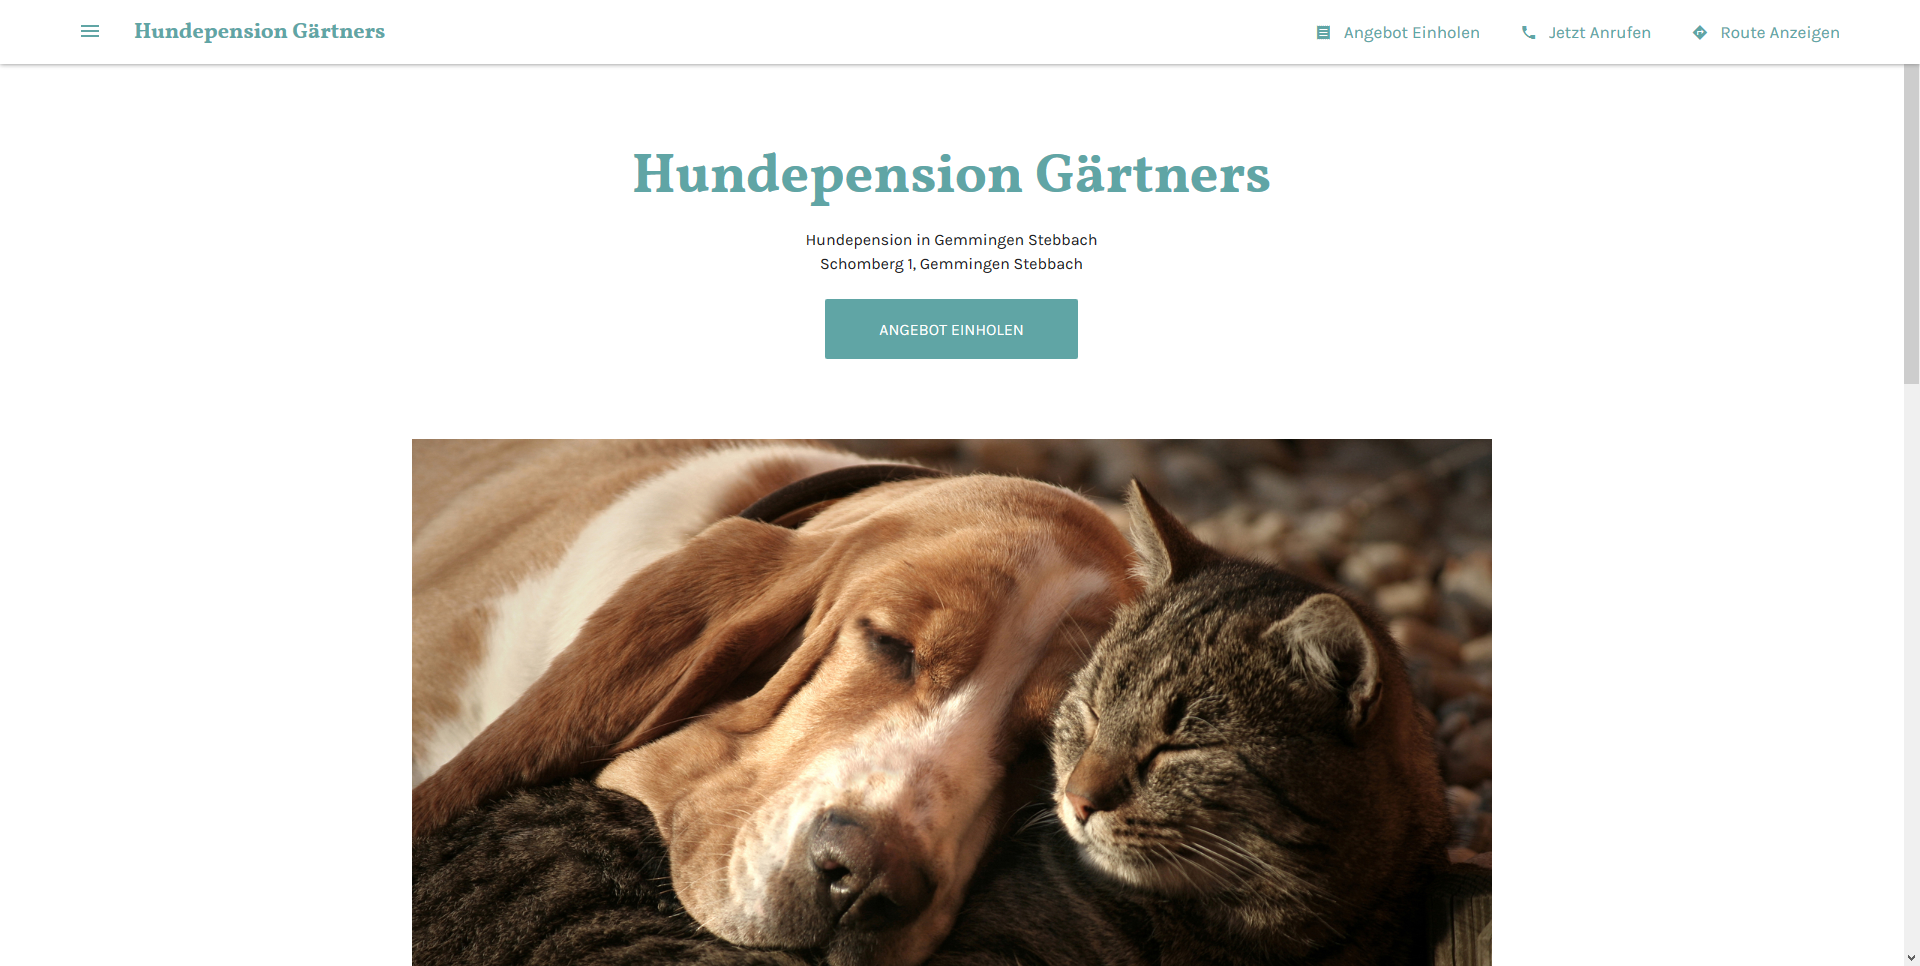 Hundepension Gärtners